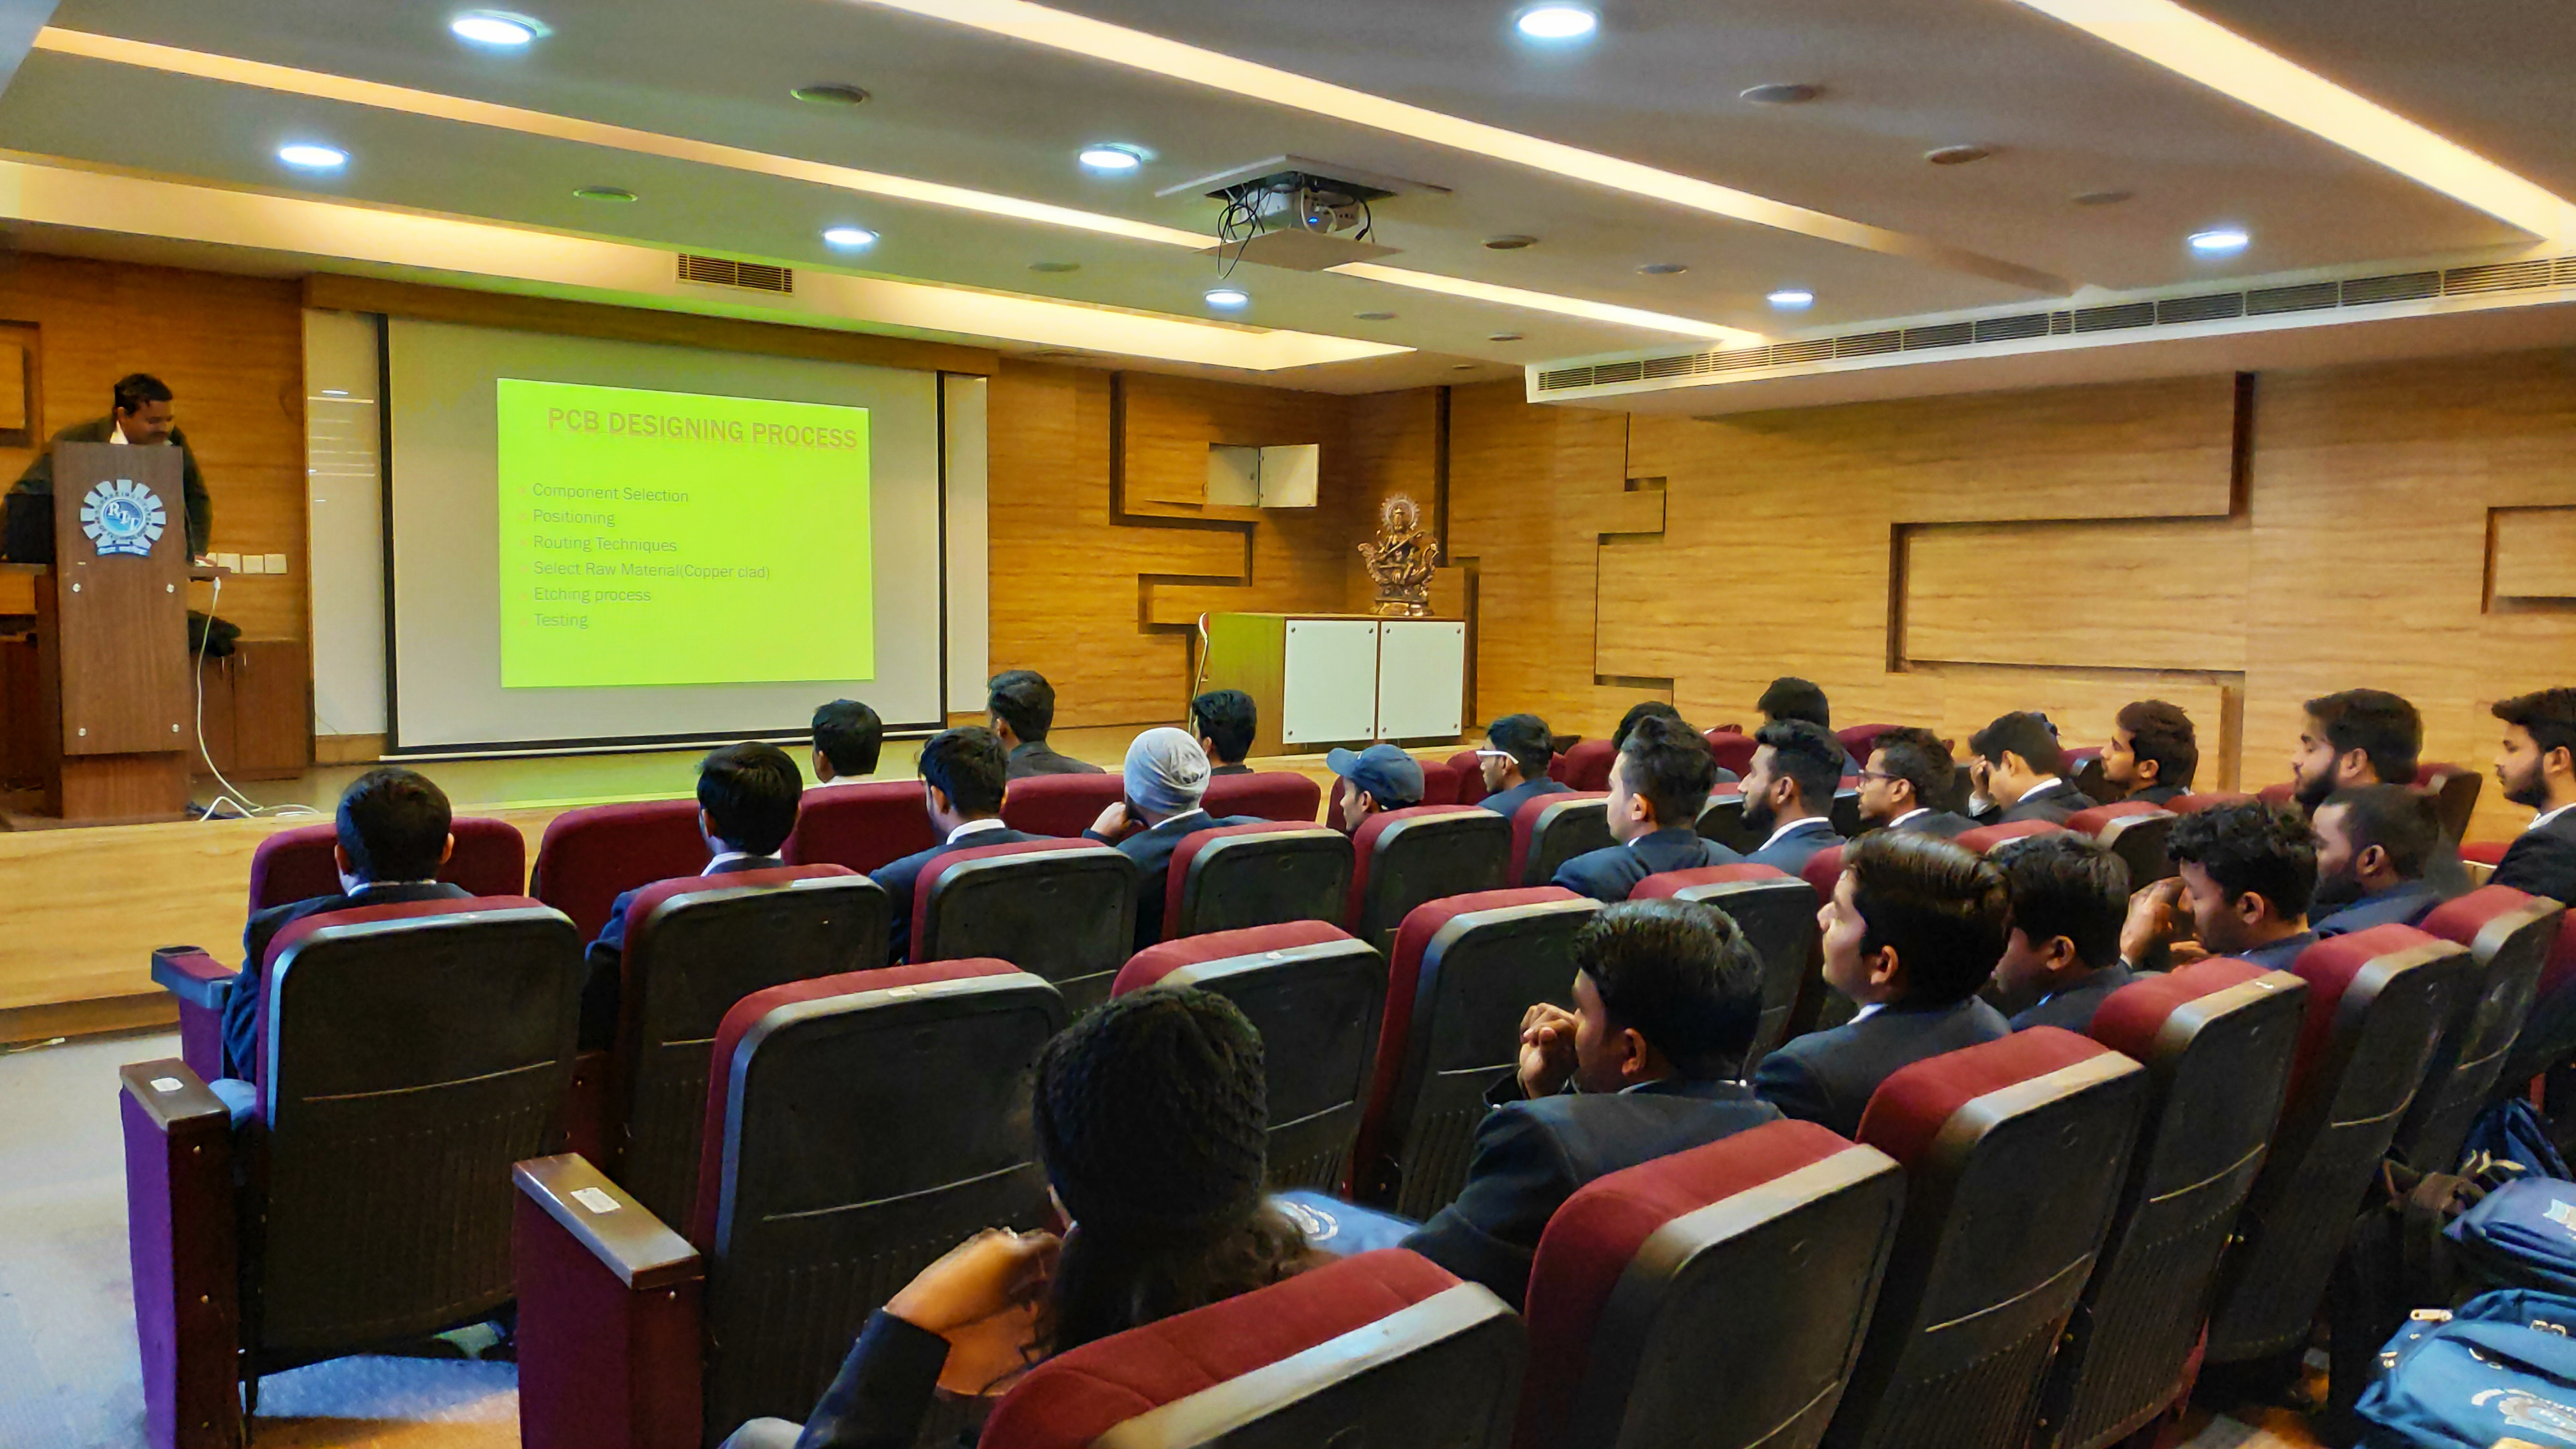 RIT Workshop on PCB Designing and TESTING